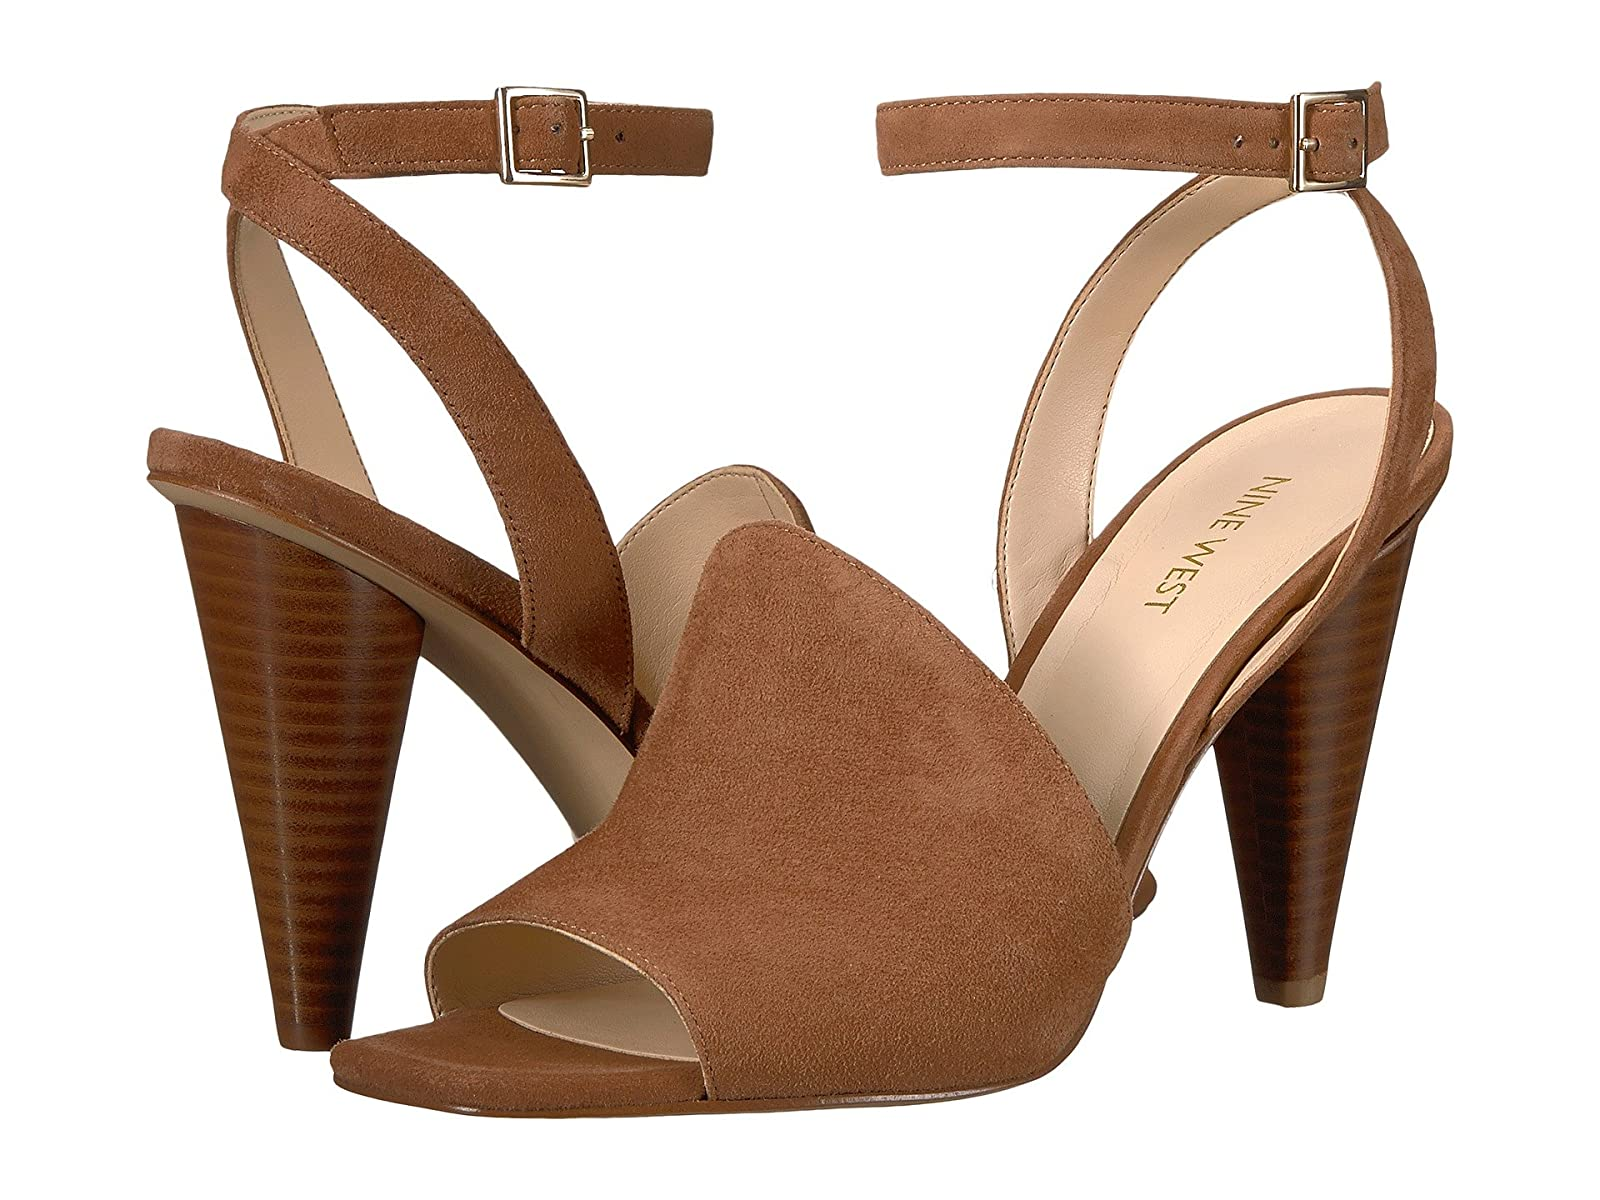 Nine West Quilty Heel SandalCheap and distinctive eye-catching shoes